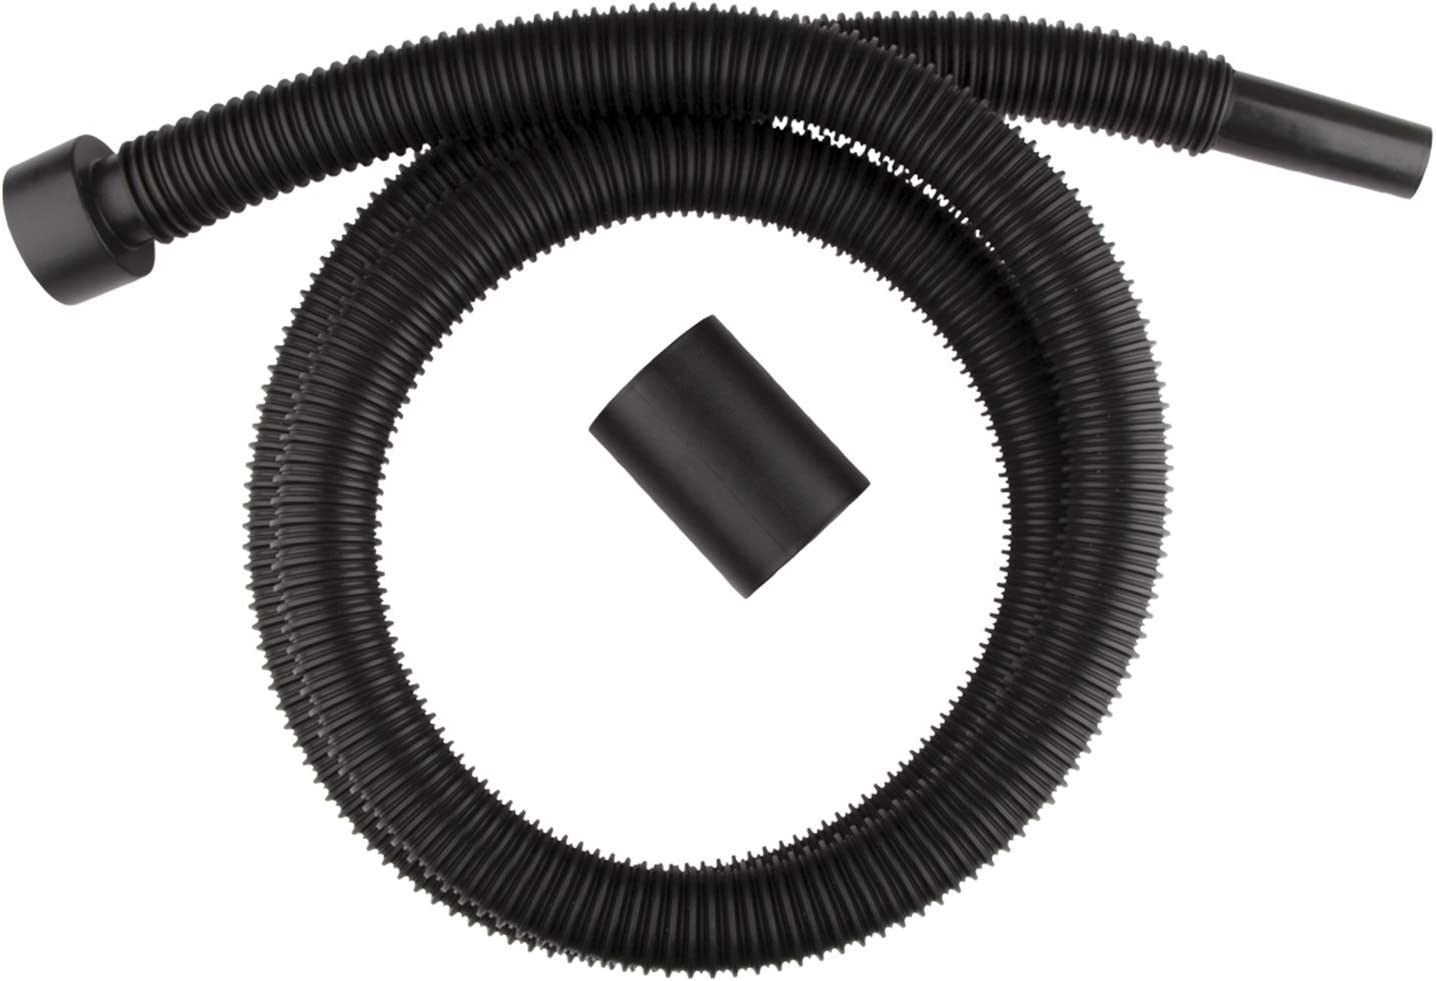 WORKSHOP Wet Dry Vacuum Accessories WS12520A Wet Dry Vacuum Hose, 1-1/4-Inch x 6-Feet Wet Dry Vac Hose, Friction Fit Hose for Wet Dry Shop Vacuum